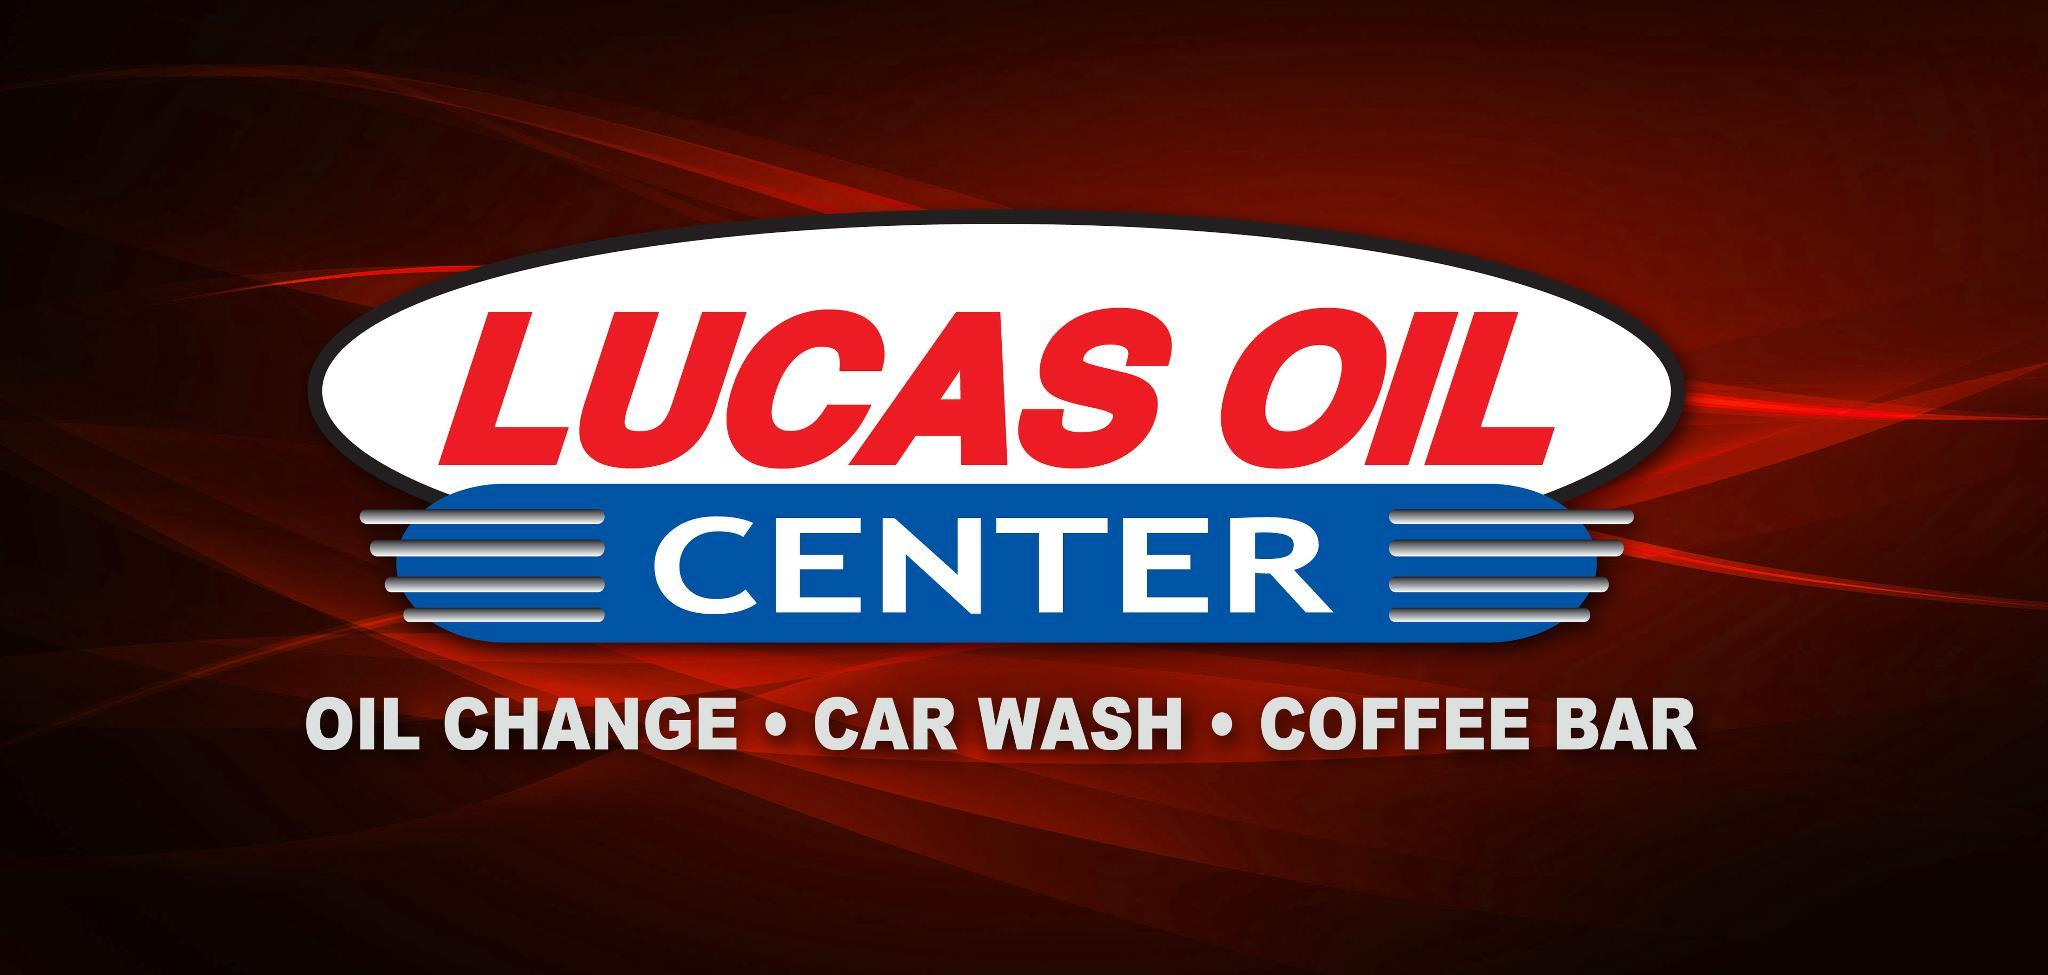 Lucas oil discount coupons